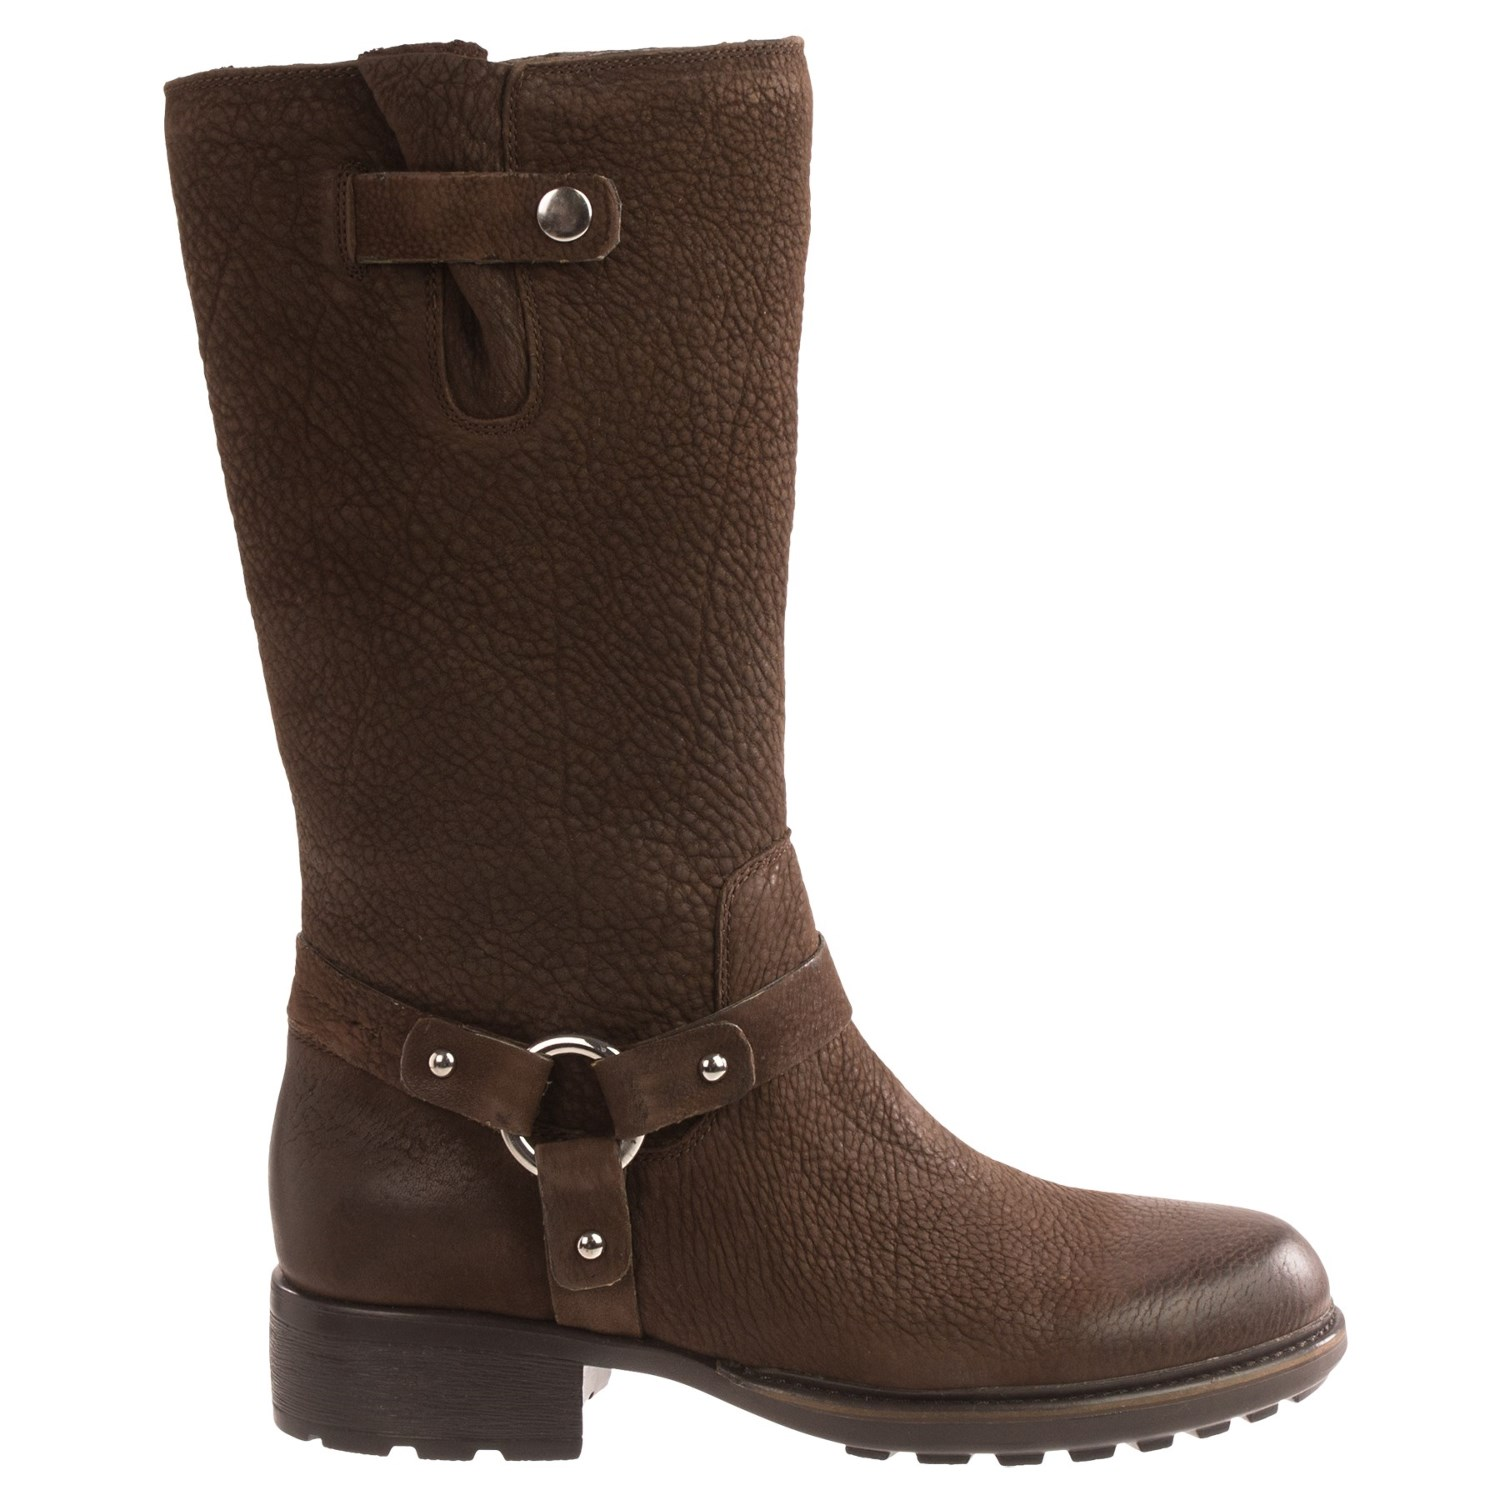 rockport st motorcycle boots for